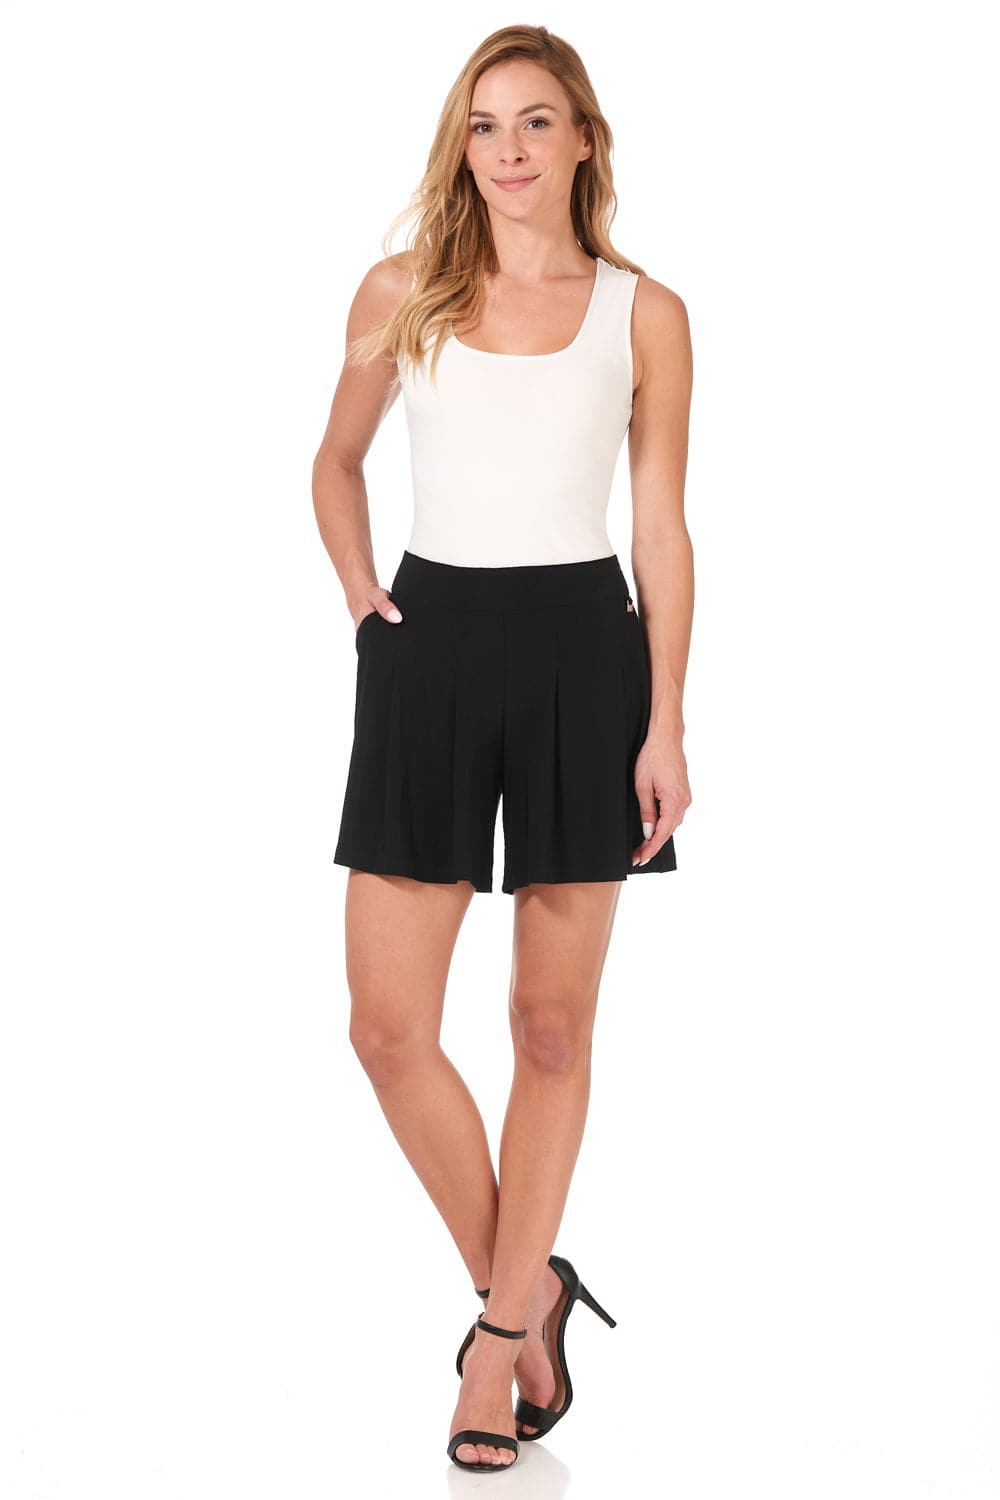 Travel-in-Style Dressy Shorts with Flippy Wide-cut Design